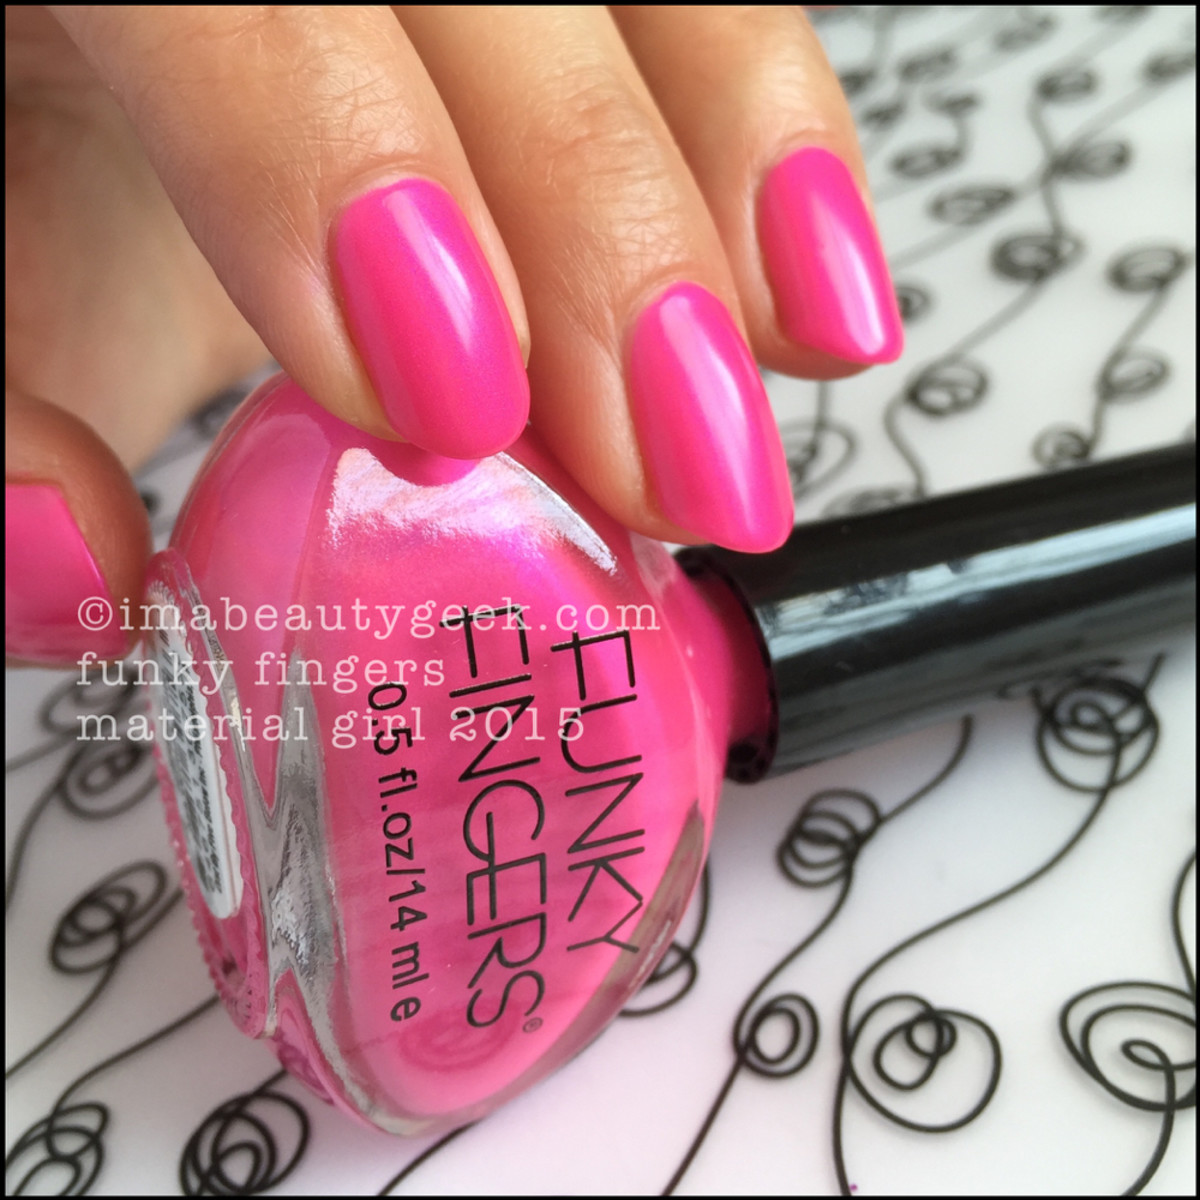 Funky Fingers Nail Polish Material Girl Swatch Beautygeeks _4